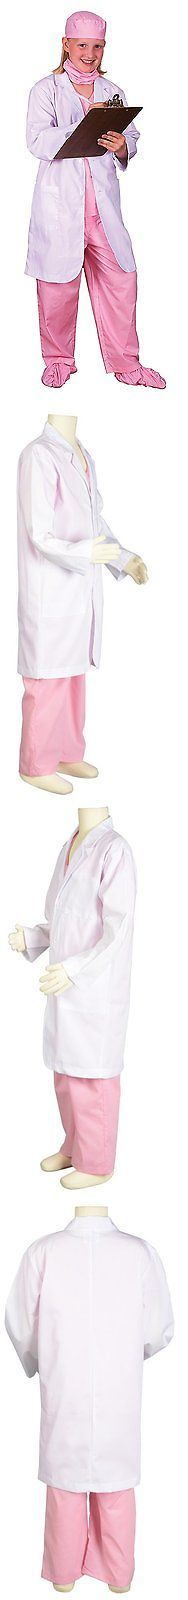 Dress-Up Costumes 19172: Aeromax Jr. Physician Set With Pink Doctor Scrubs And White Lab Coat, Size 2 3. -> BUY IT NOW ONLY: $37.64 on eBay!